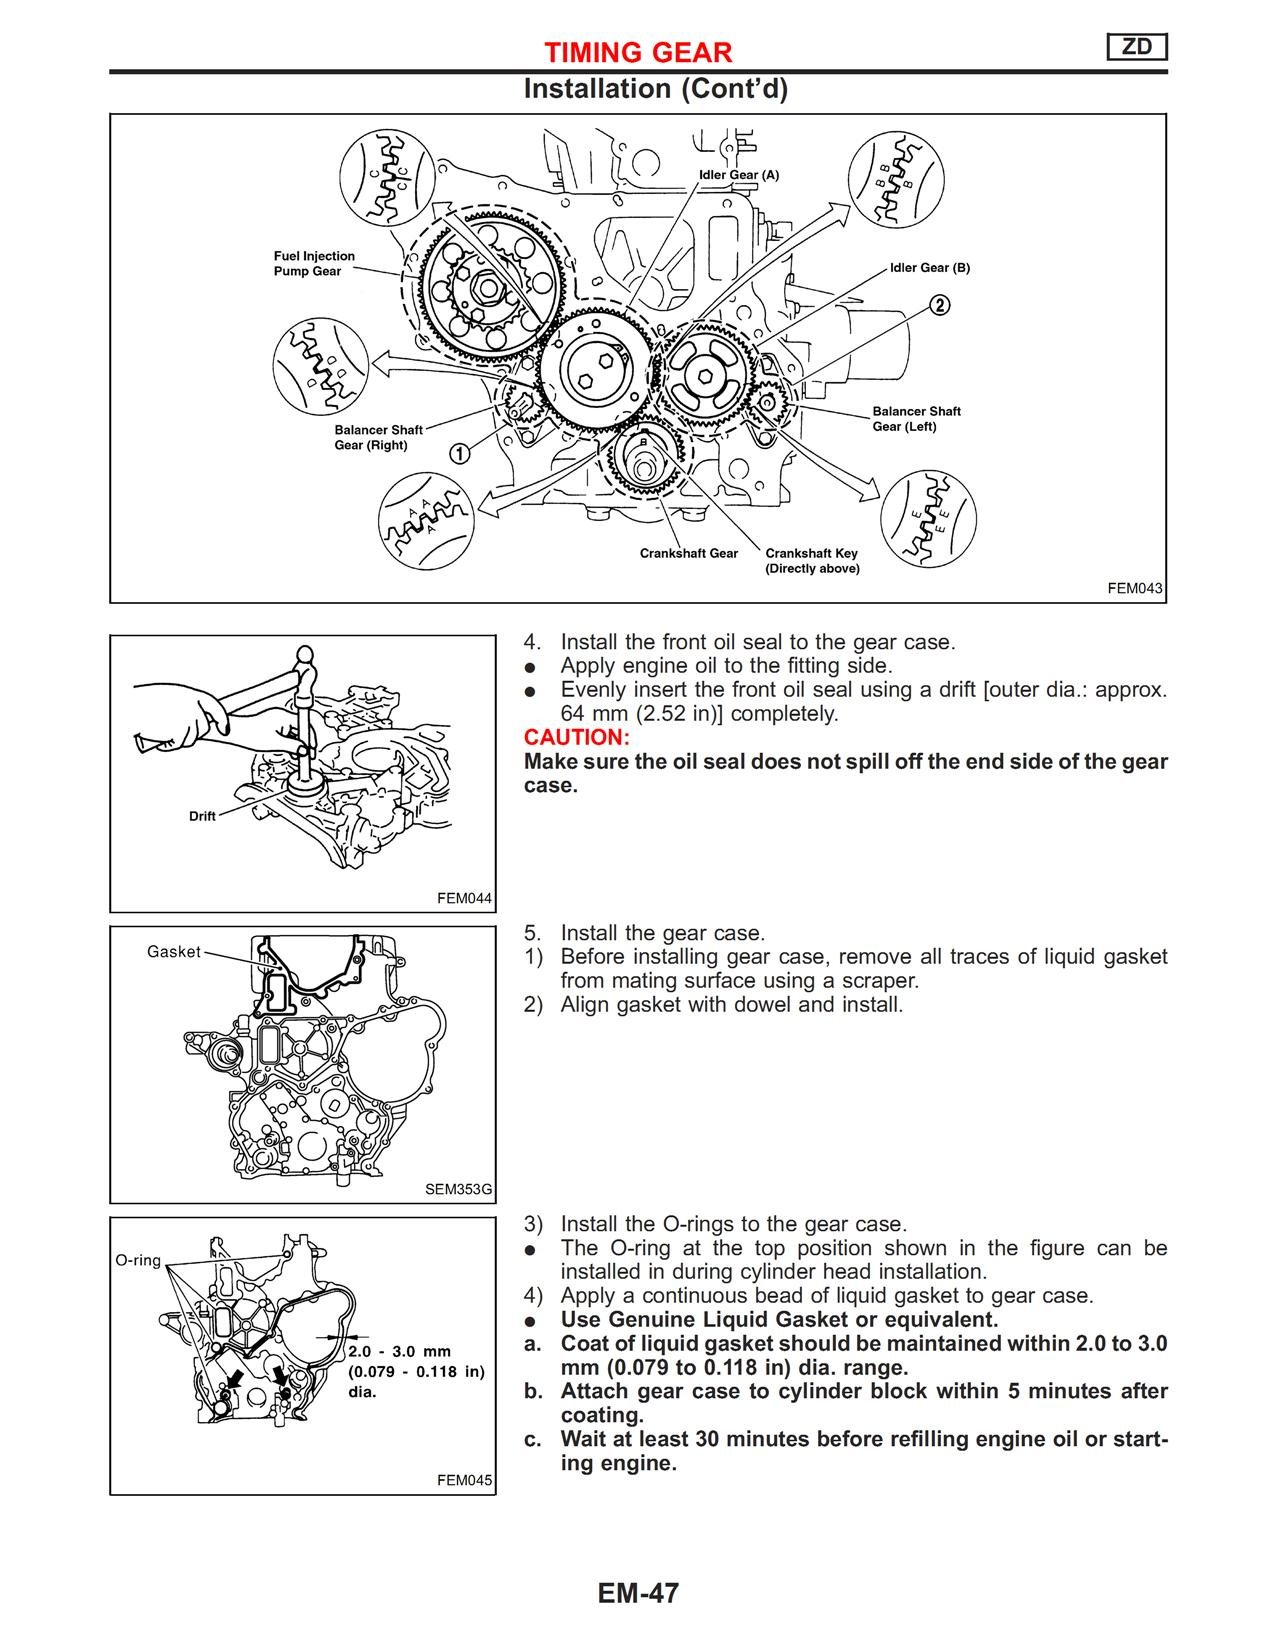 Mark 7 Wiring Diagram Not Lossing Advance Ballast Timing Marks For Navara D22 Ford Fiesta Dimming